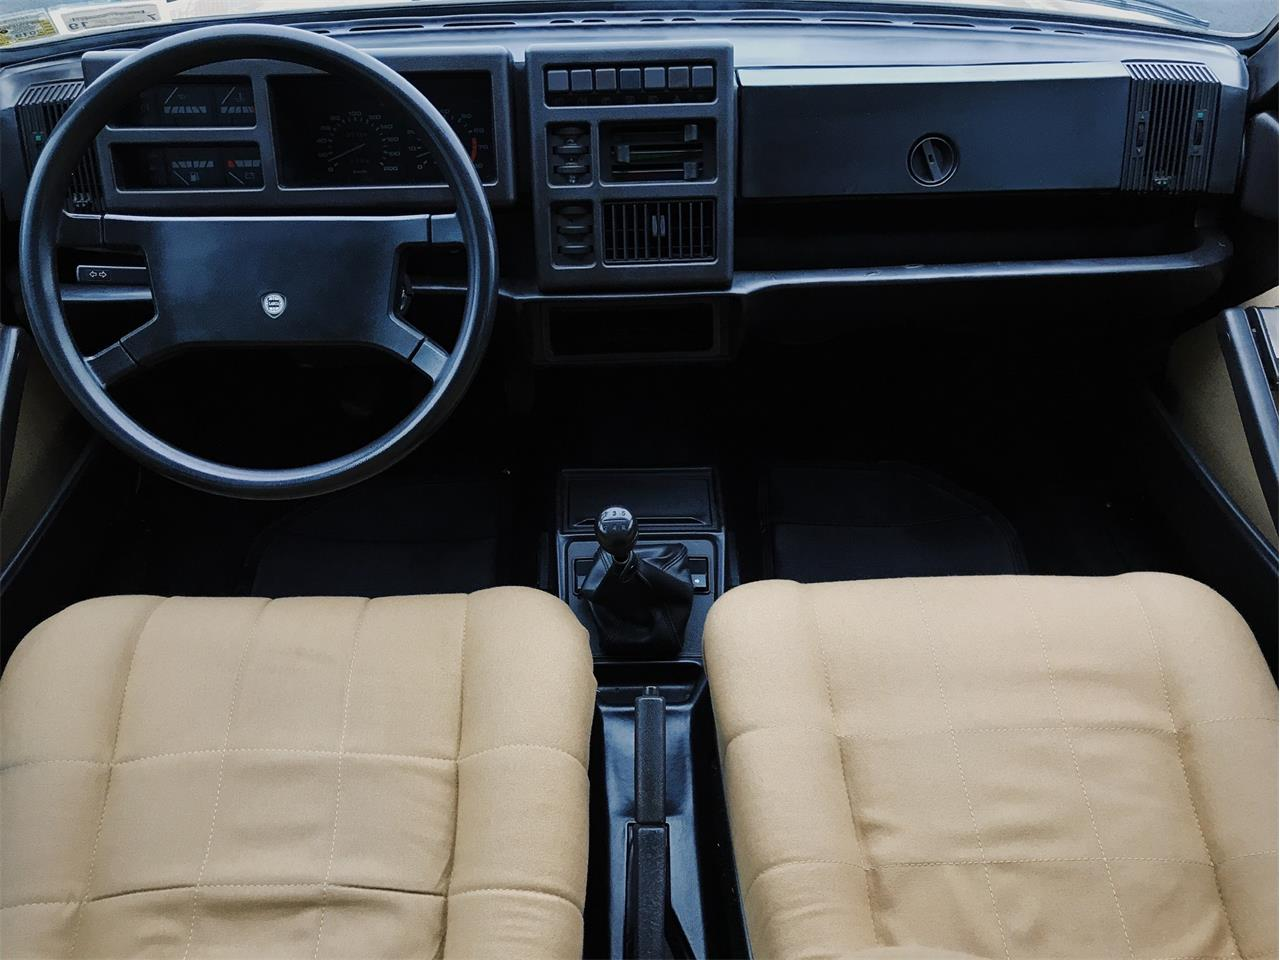 1982 Lancia Delta for sale in Brooklyn, NY – photo 15